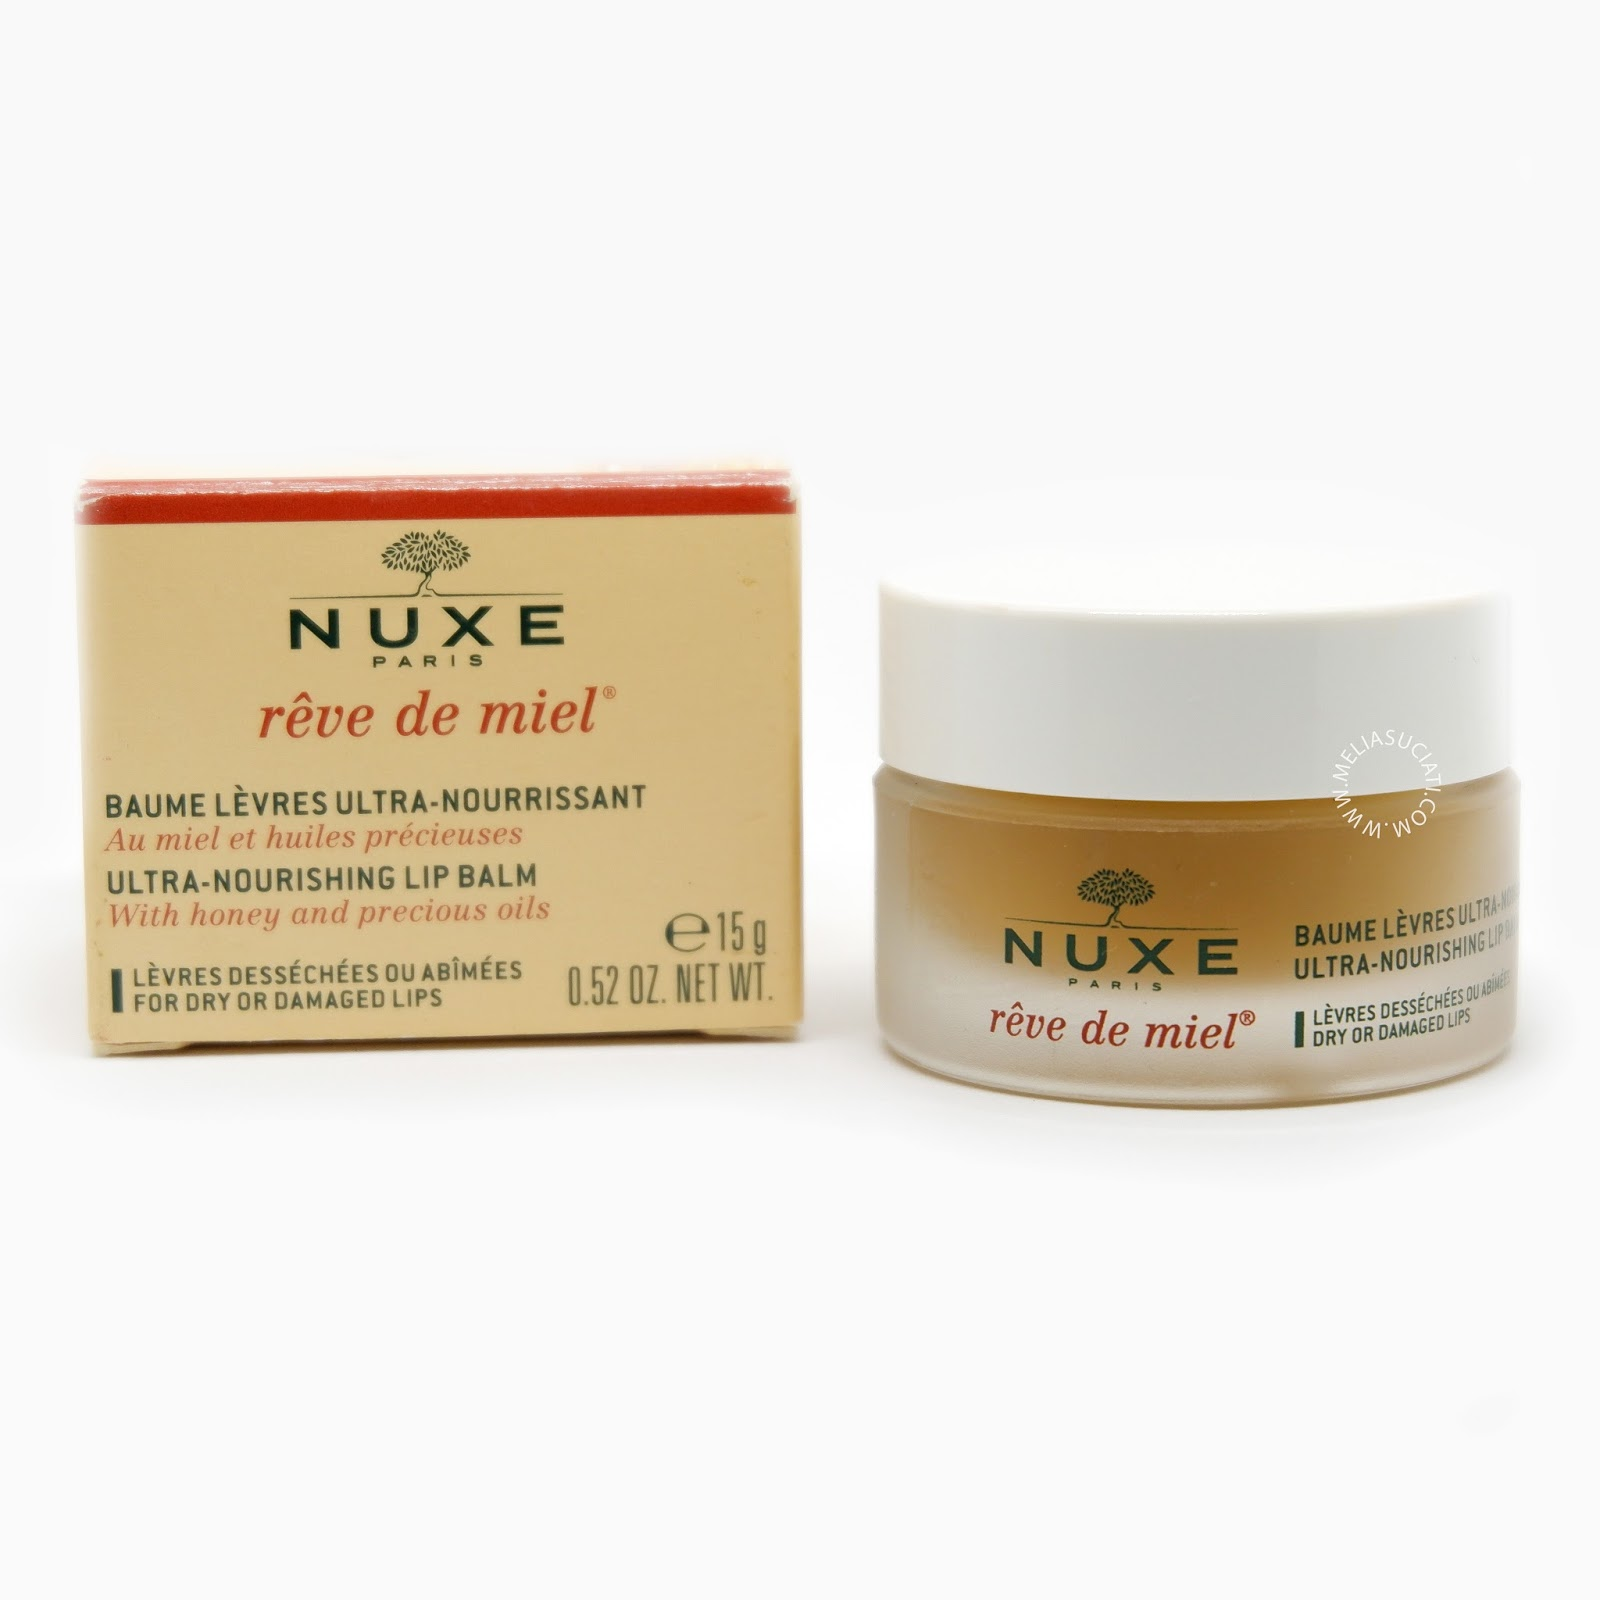 [Review] NUXE reve de miel-Lip Balm